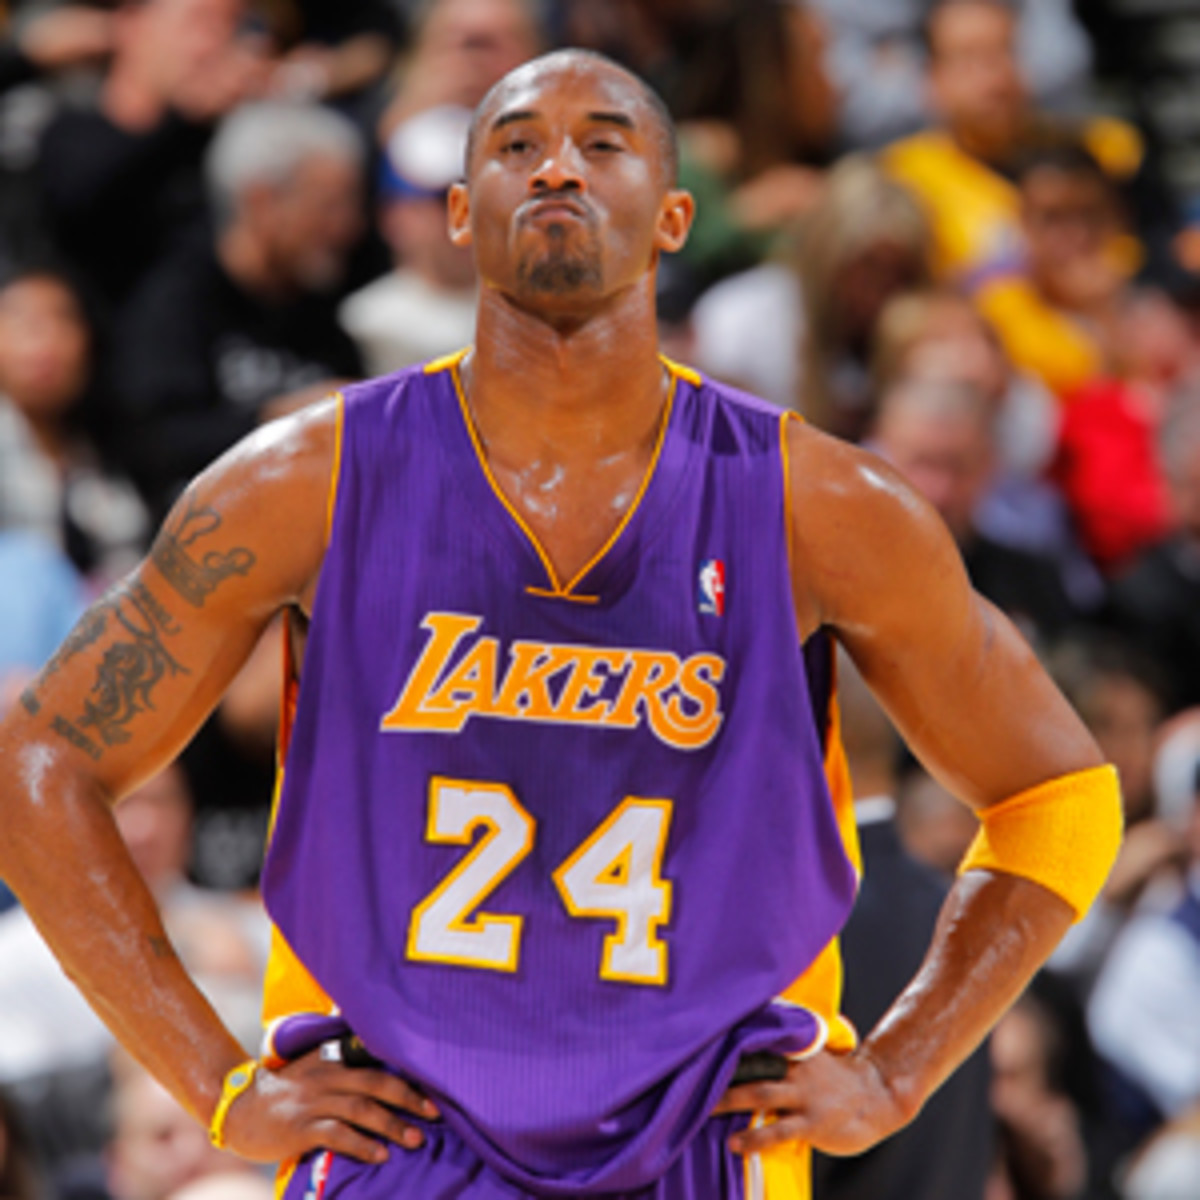 Kobe Bryant has expressed frustration with the Lakers' unexpectedly poor play. (Rocky Widner/NBAE via Getty Images)